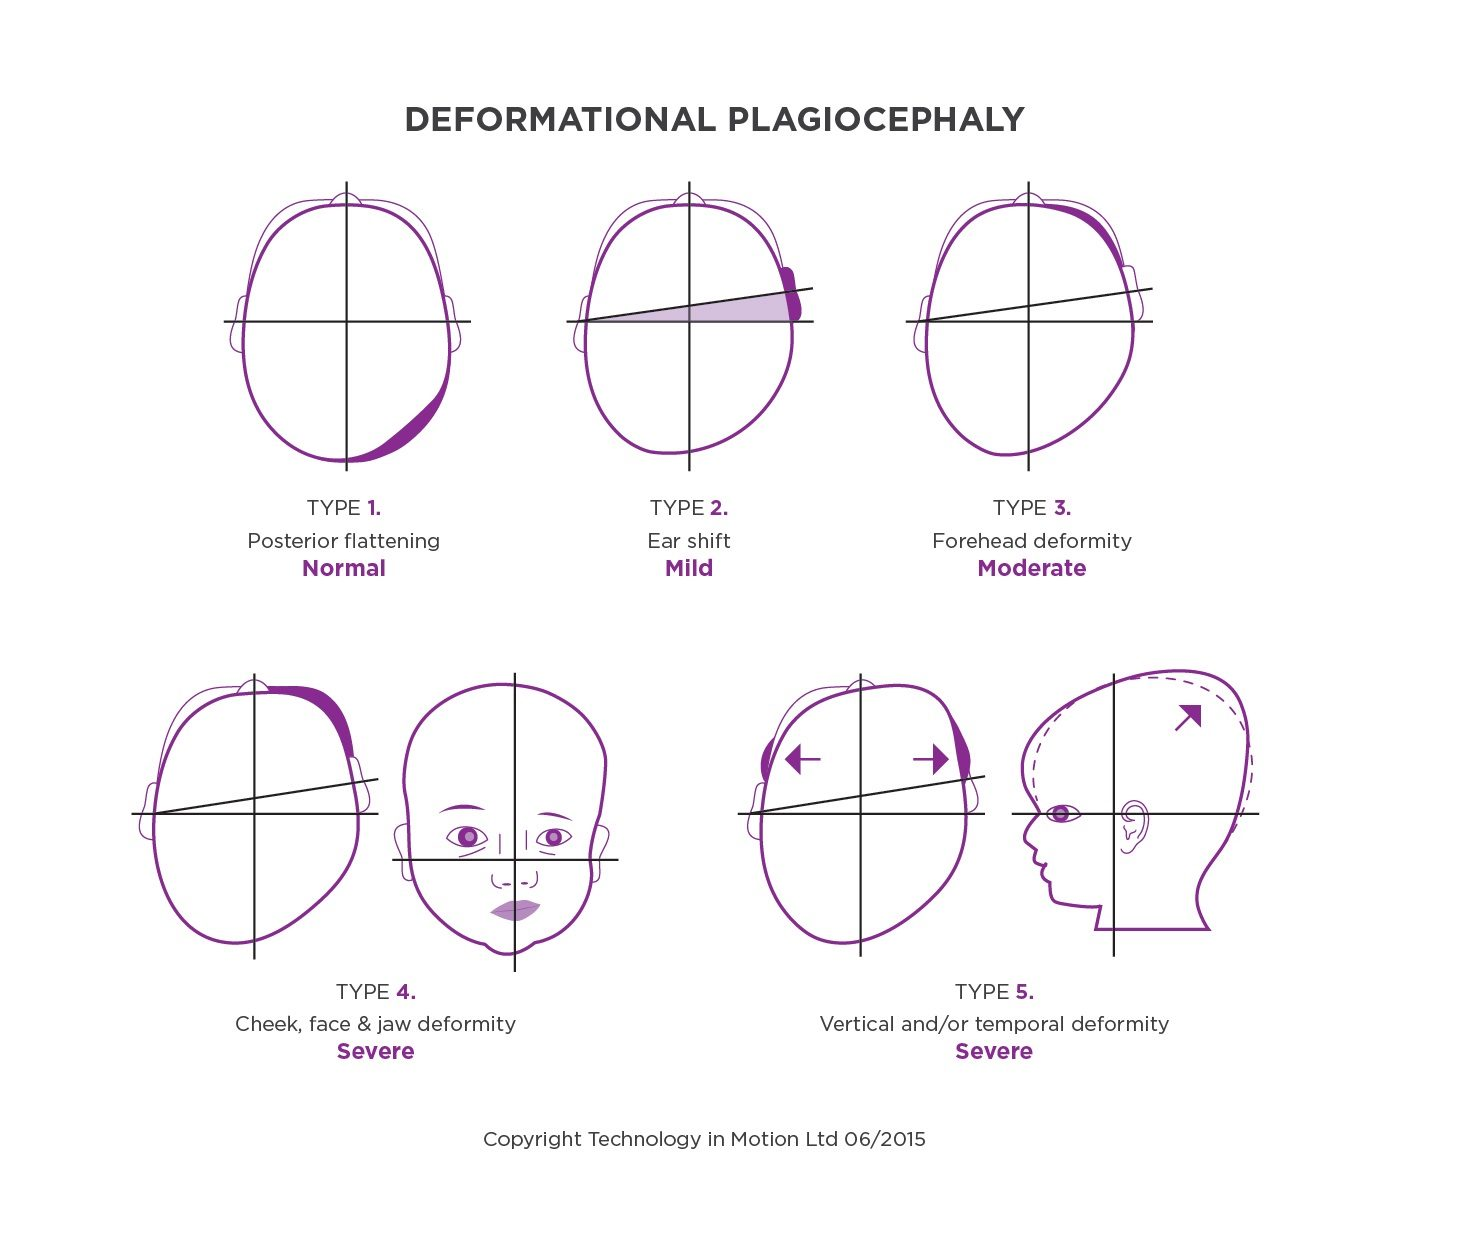 Plagiocephaly - Argenta Scale to Measure different types of plagiocephaly